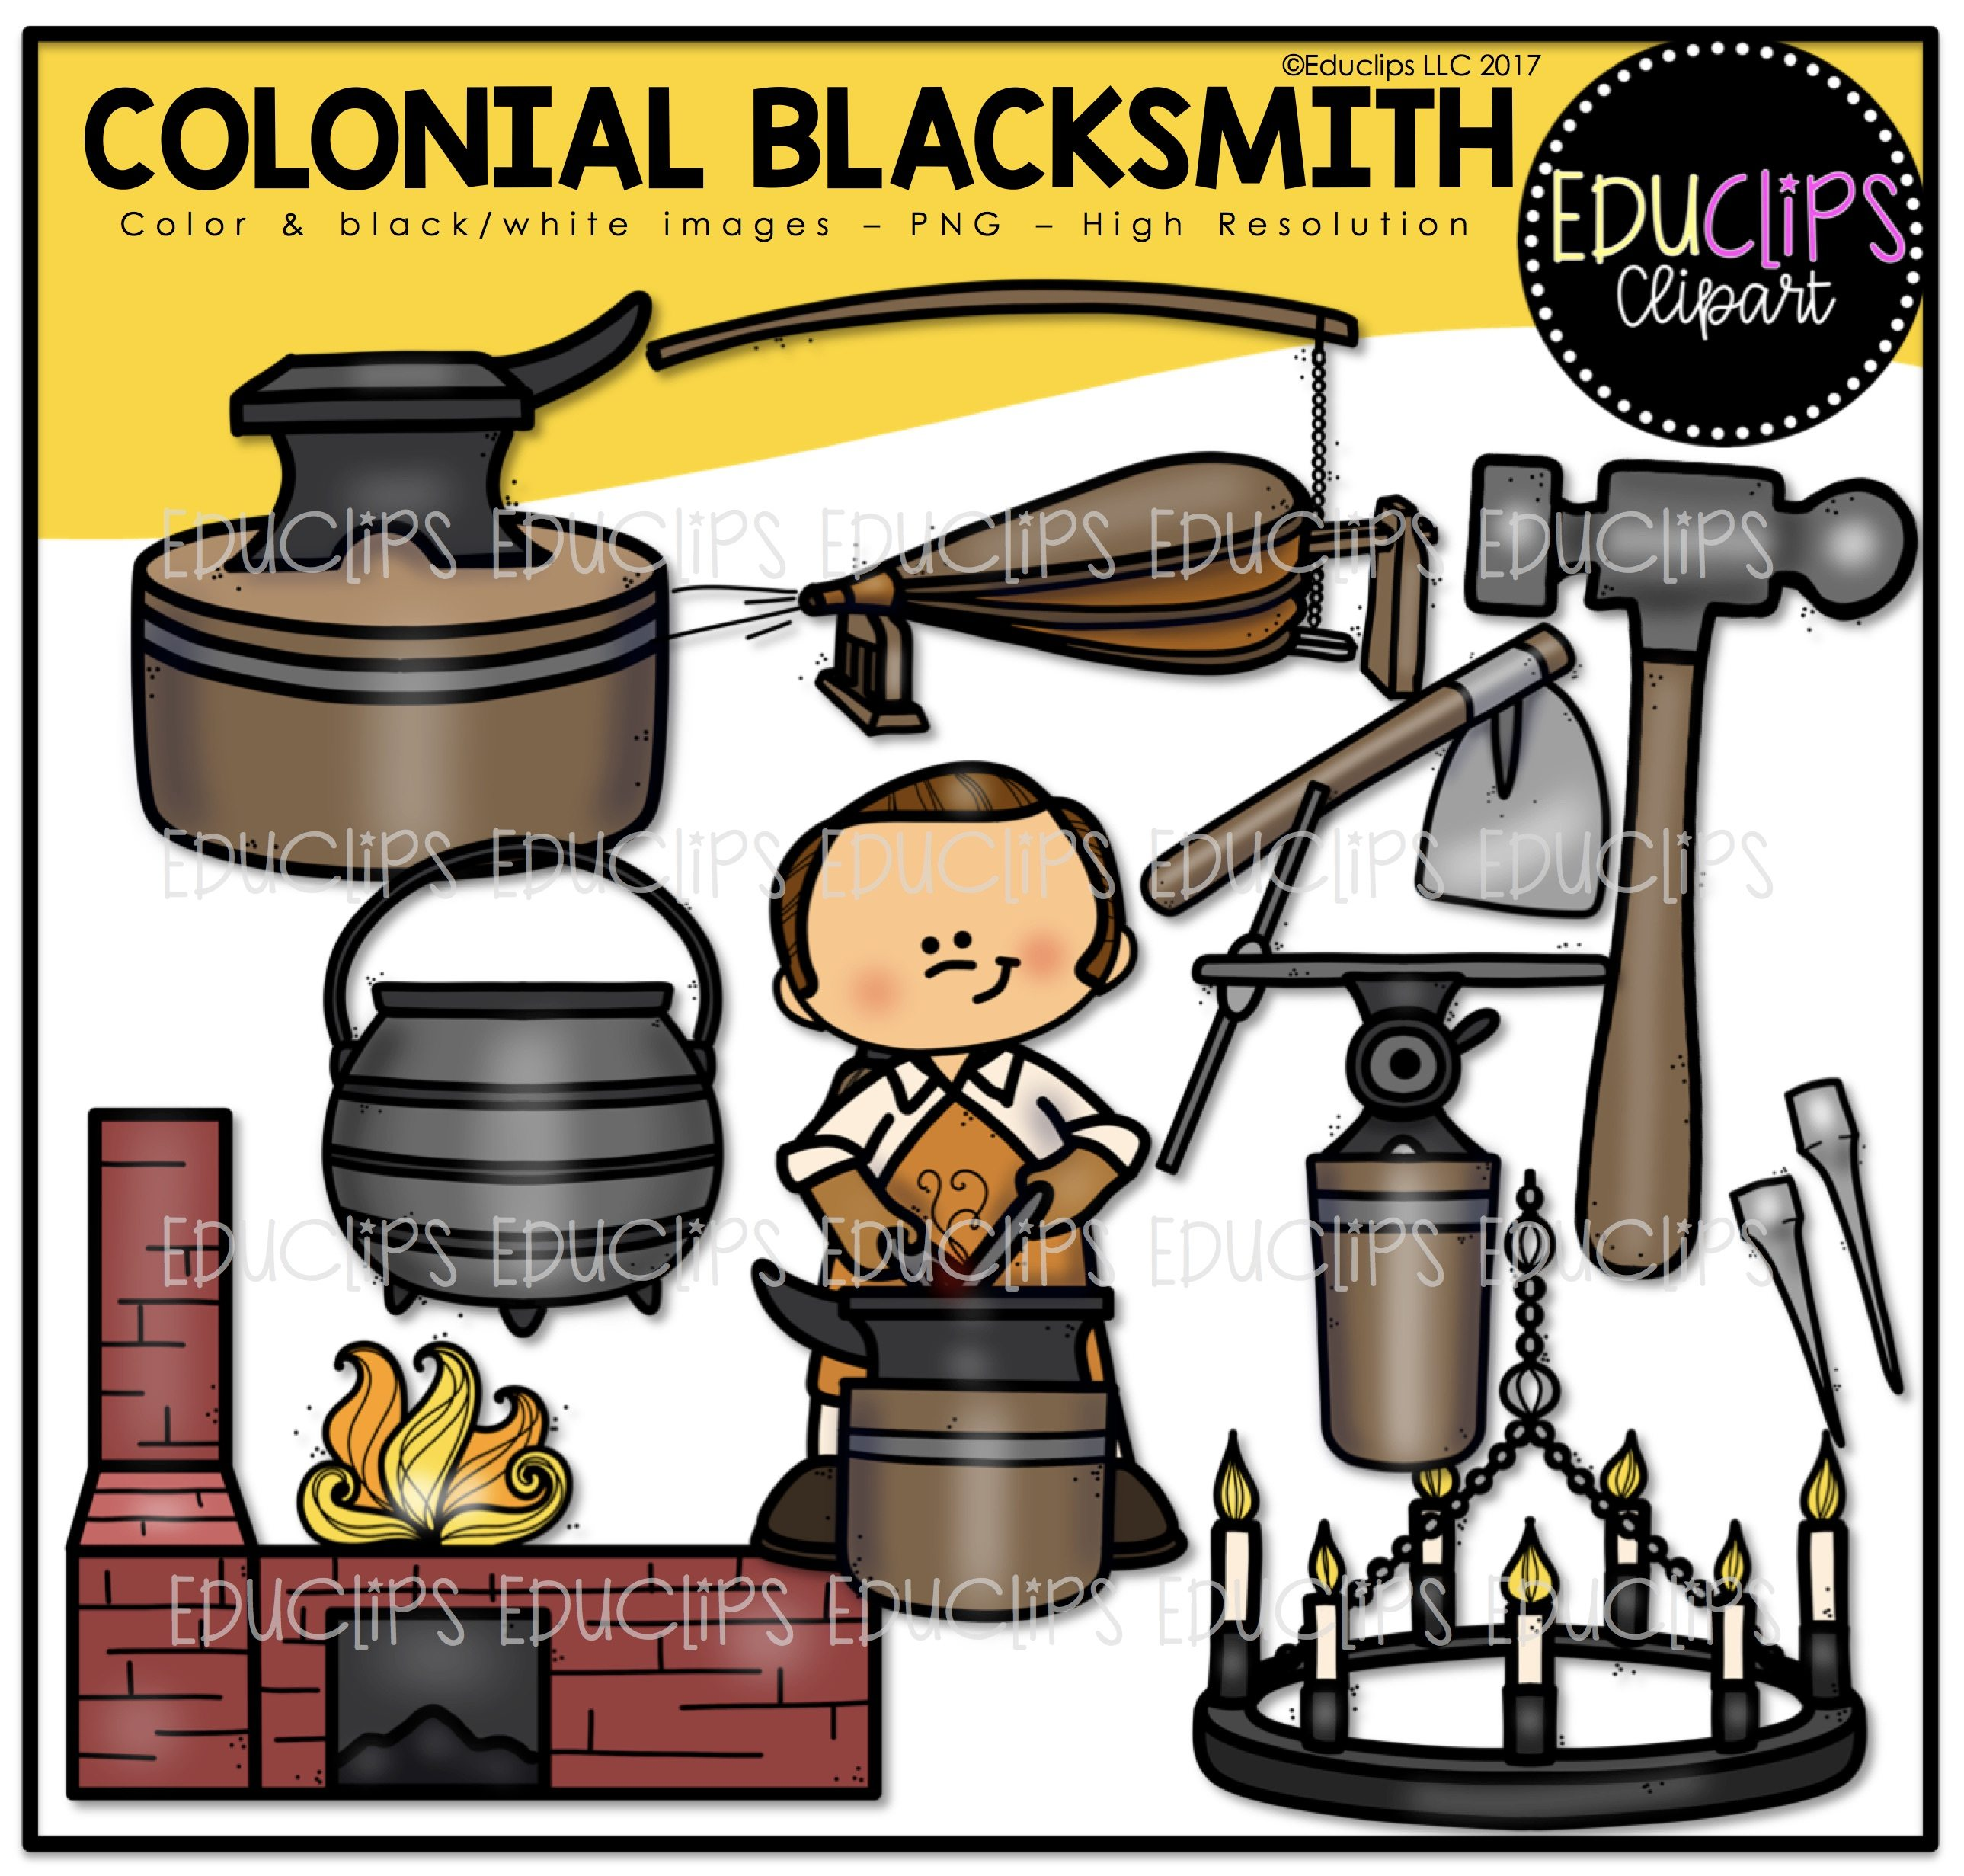 Clip art bundle color. Anvil clipart colonial blacksmith